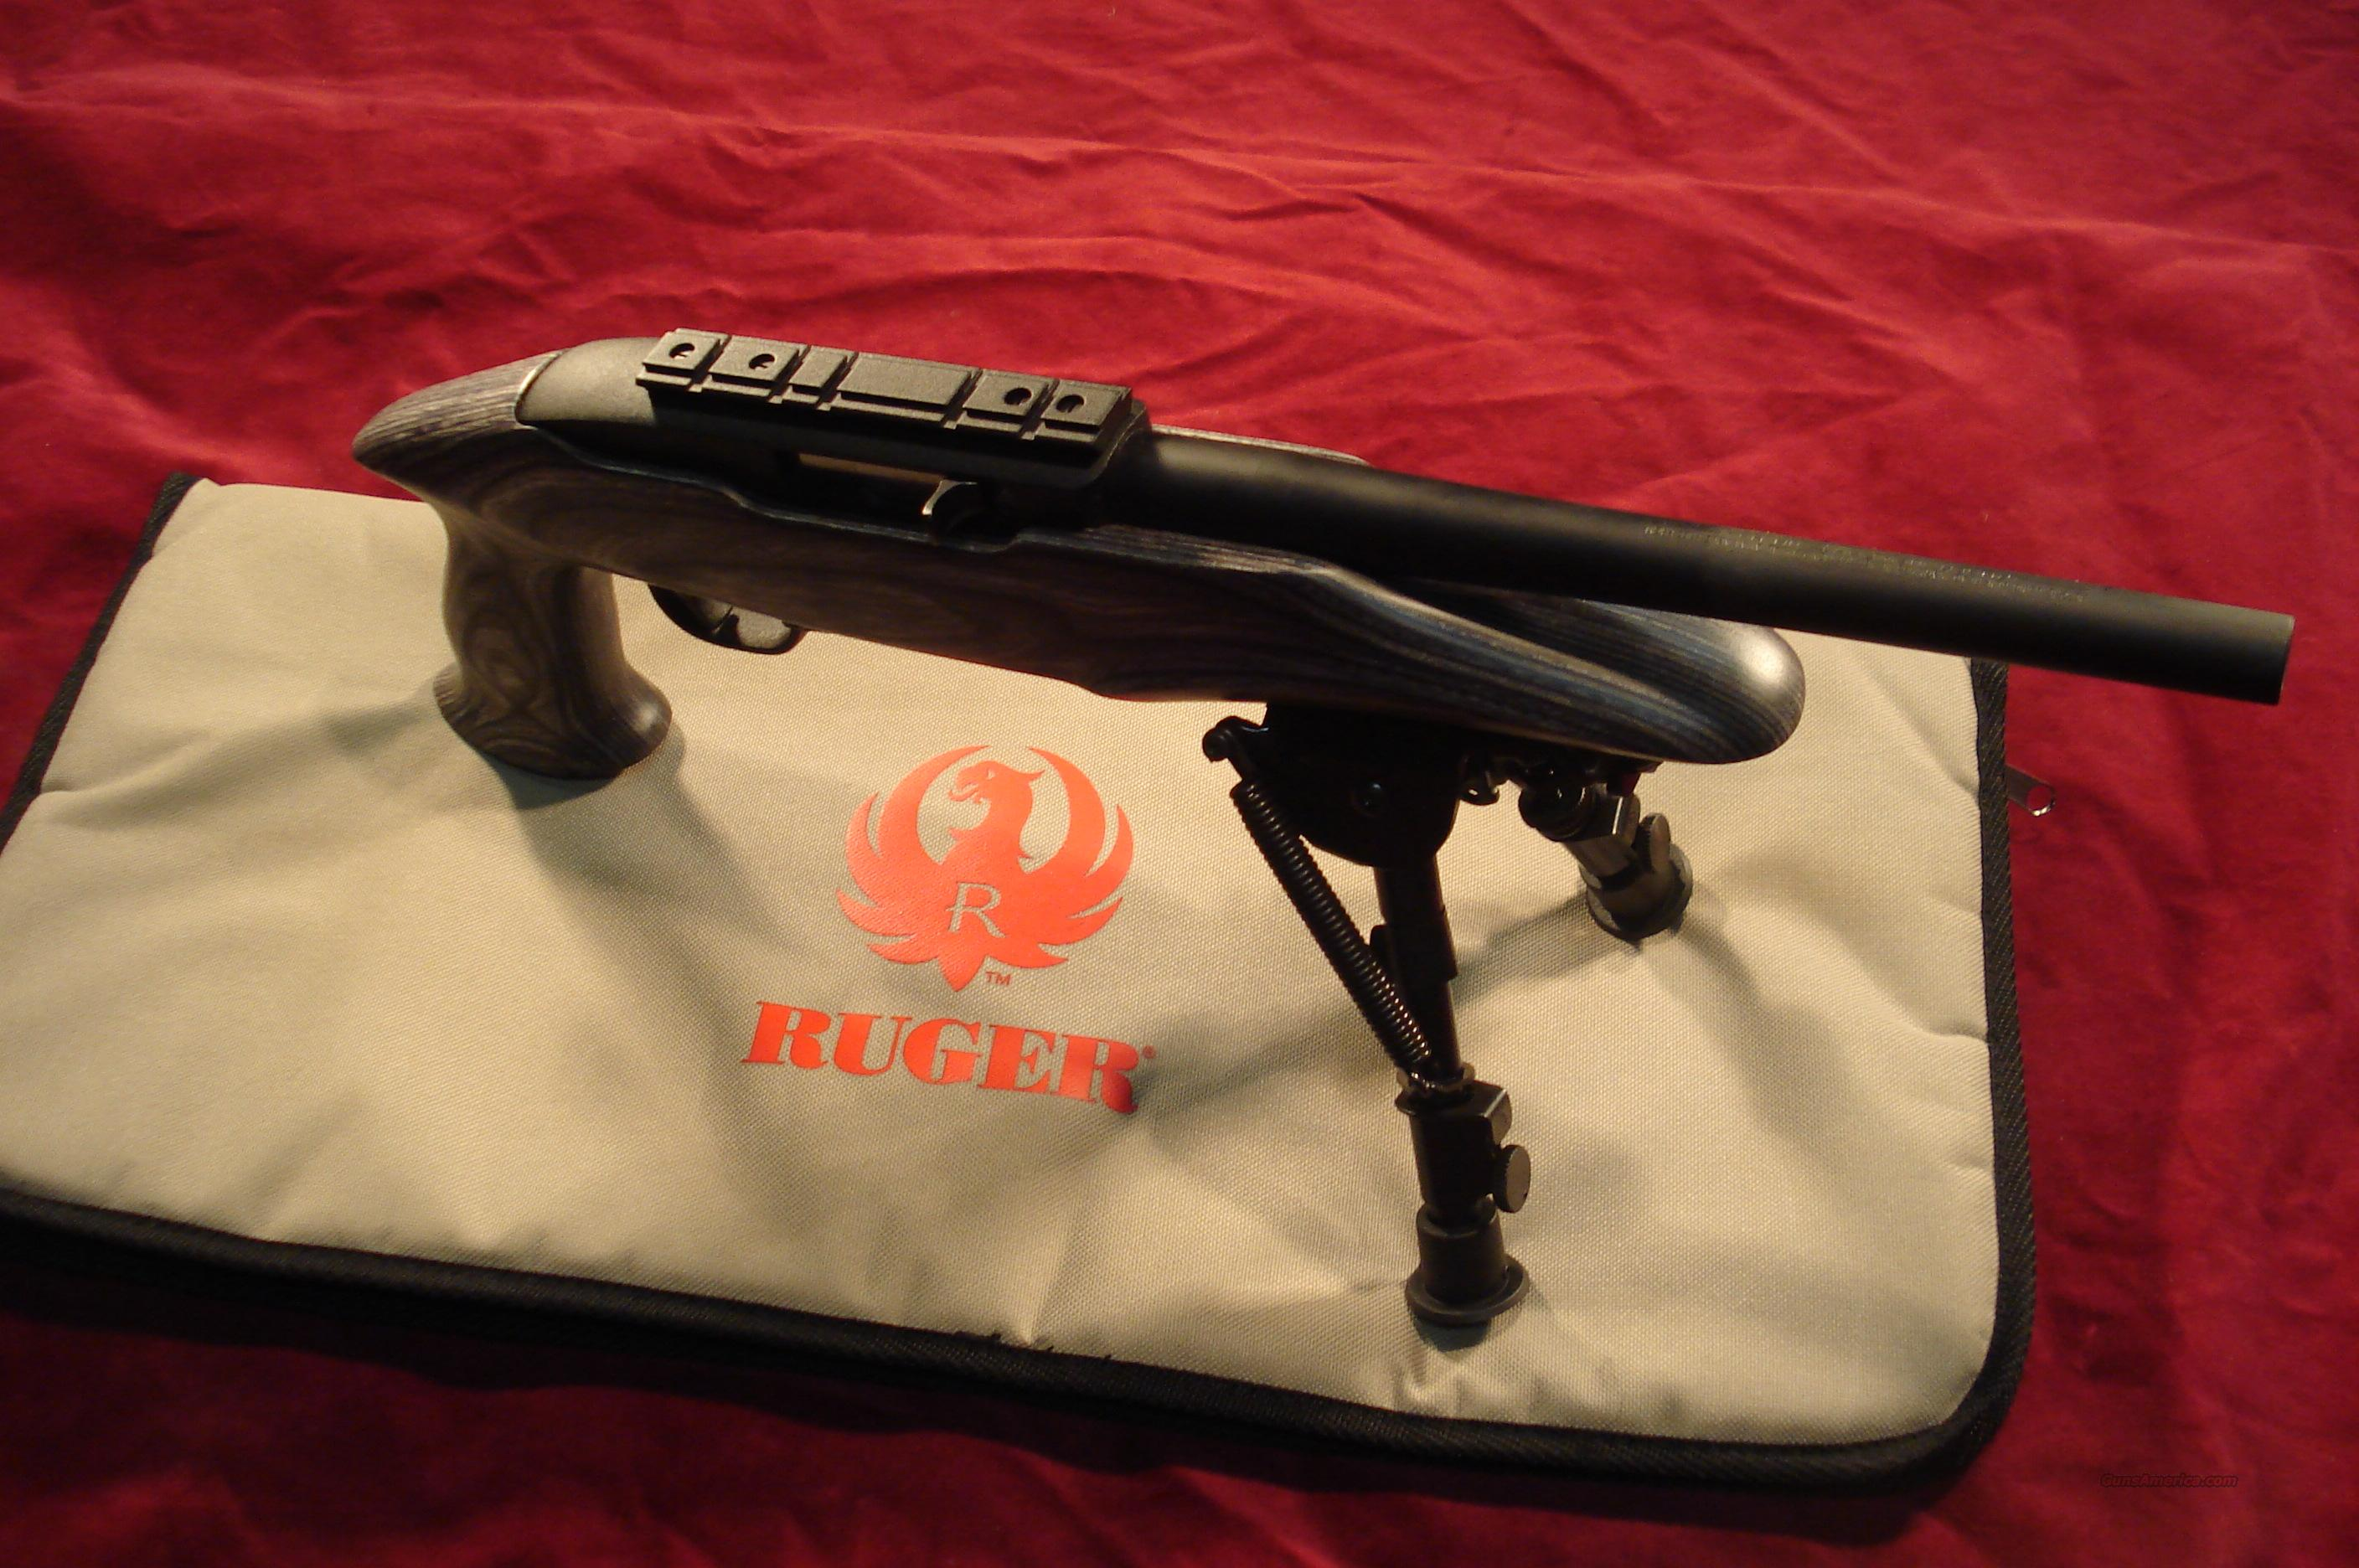 RUGER CHARGER 22LR PISTOL NEW  Guns > Pistols > Ruger Semi-Auto Pistols > Full Frame Autos